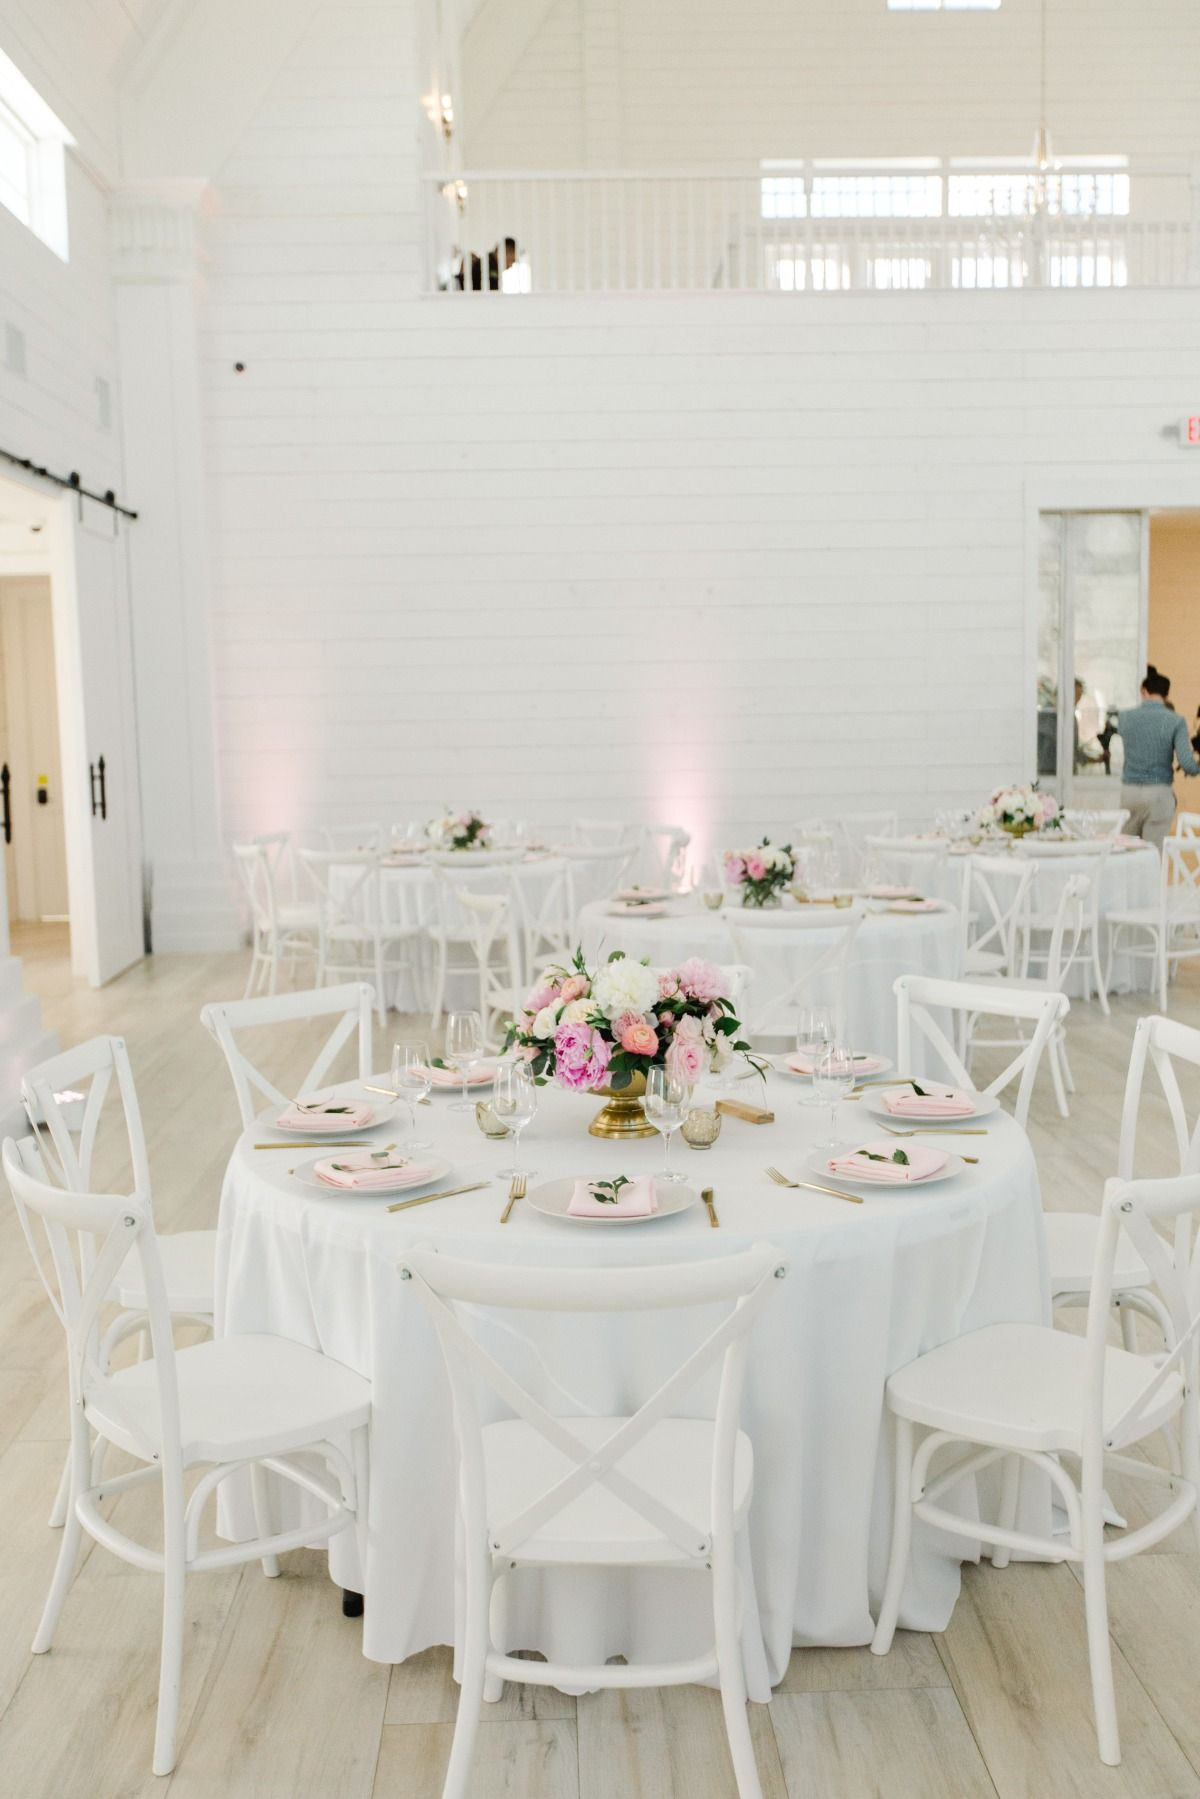 How To Have A Romantic White Barn Wedding In Texas Barn Wedding Wedding Table Centerpieces White Barn